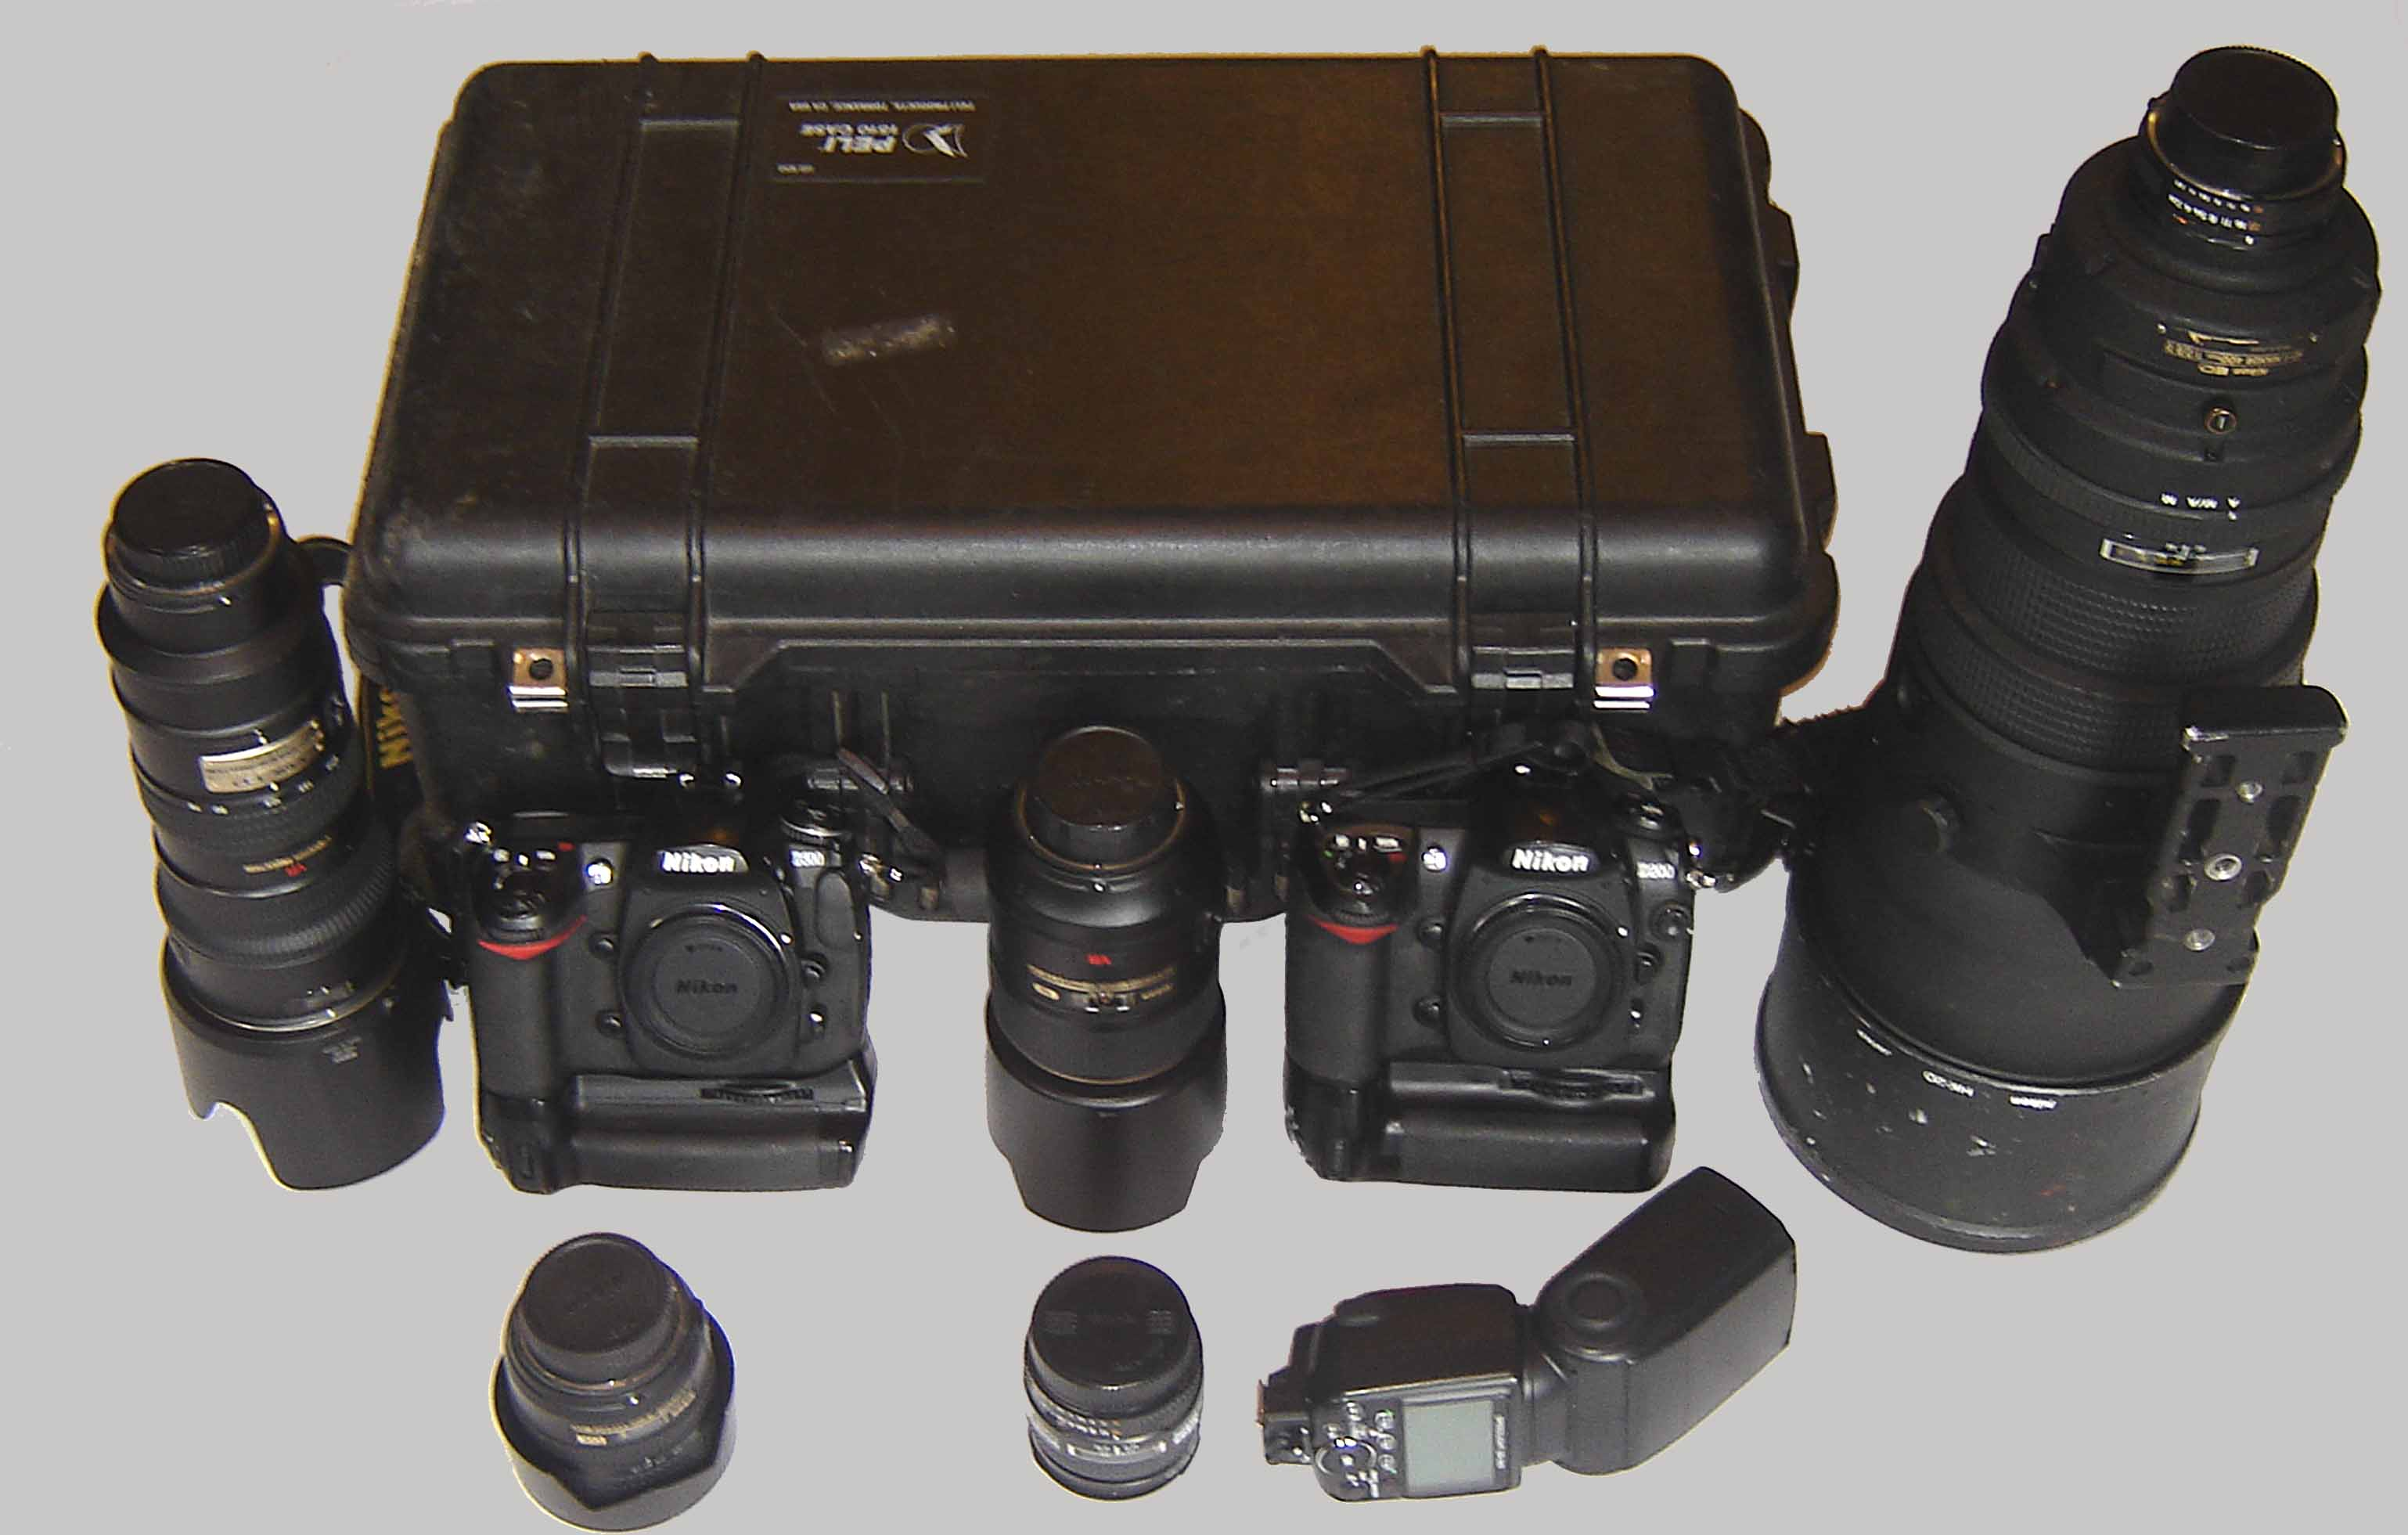 The Nikon gear we use.